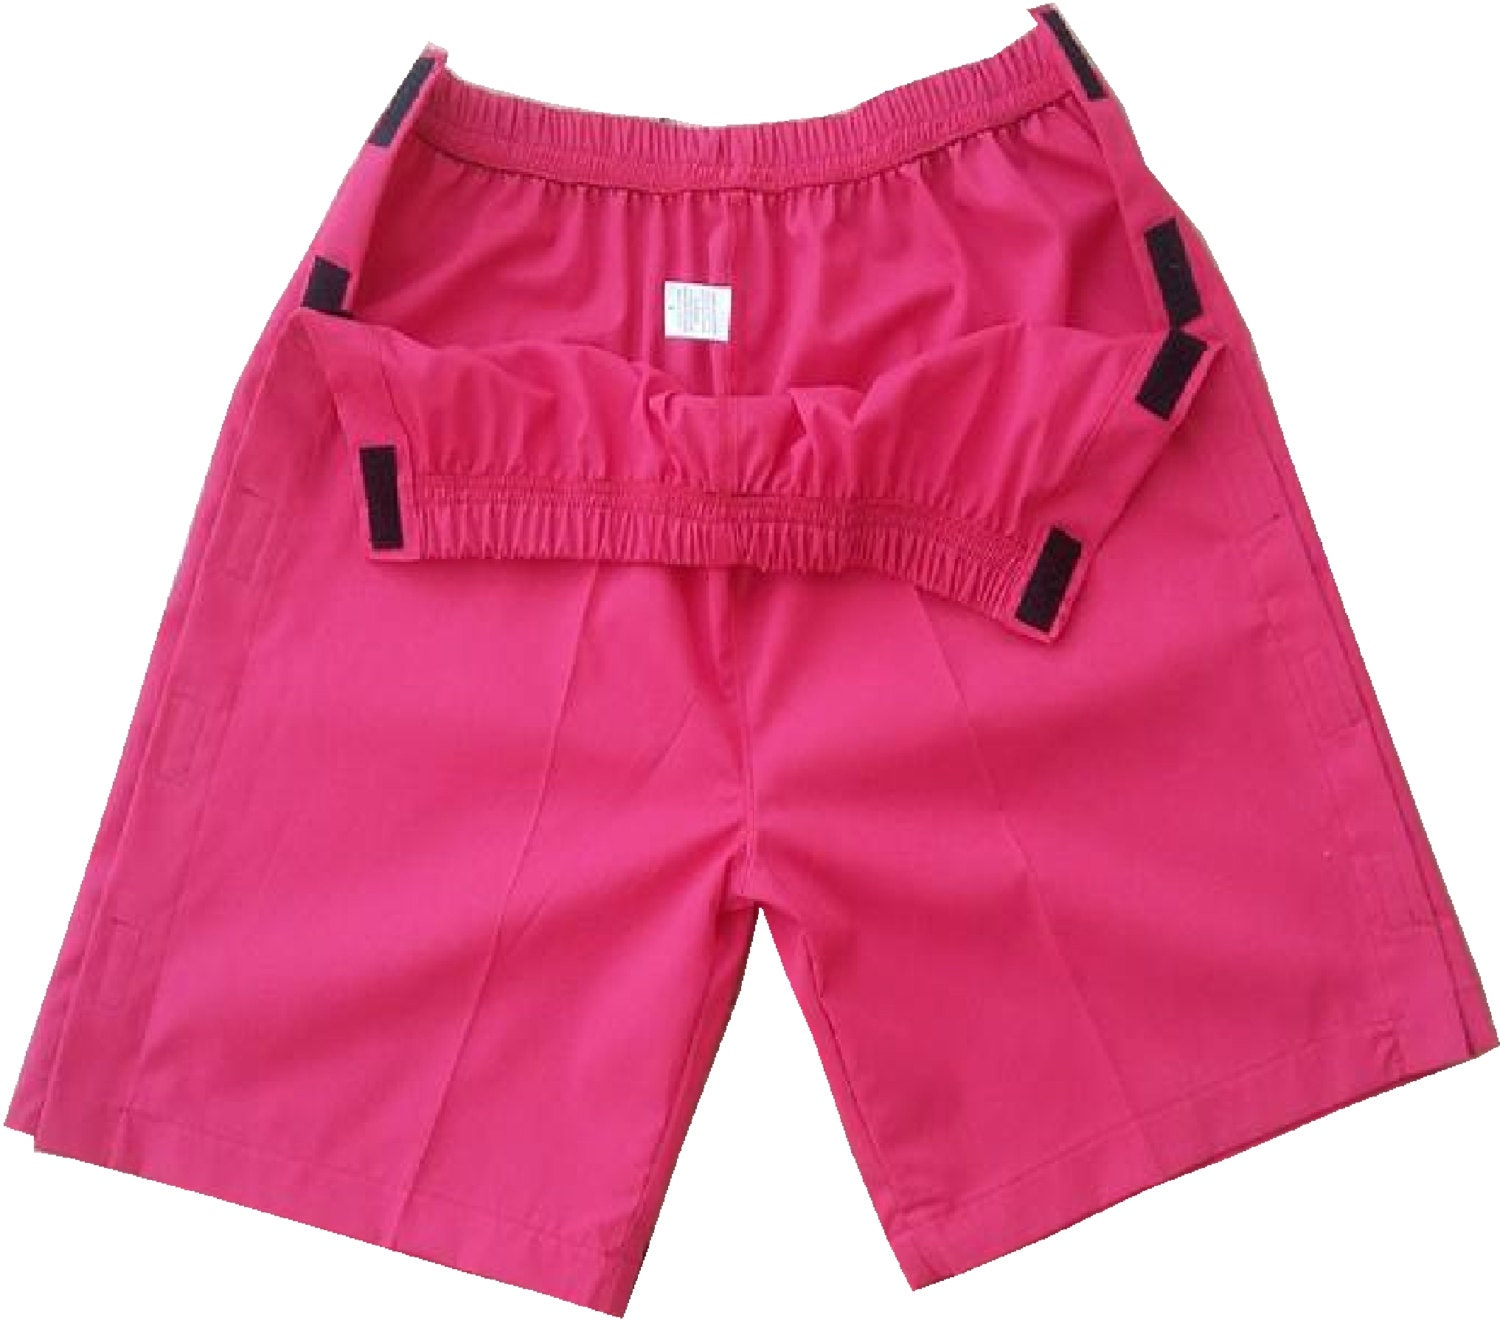 side open shorts adaptive clothing disabled clothes